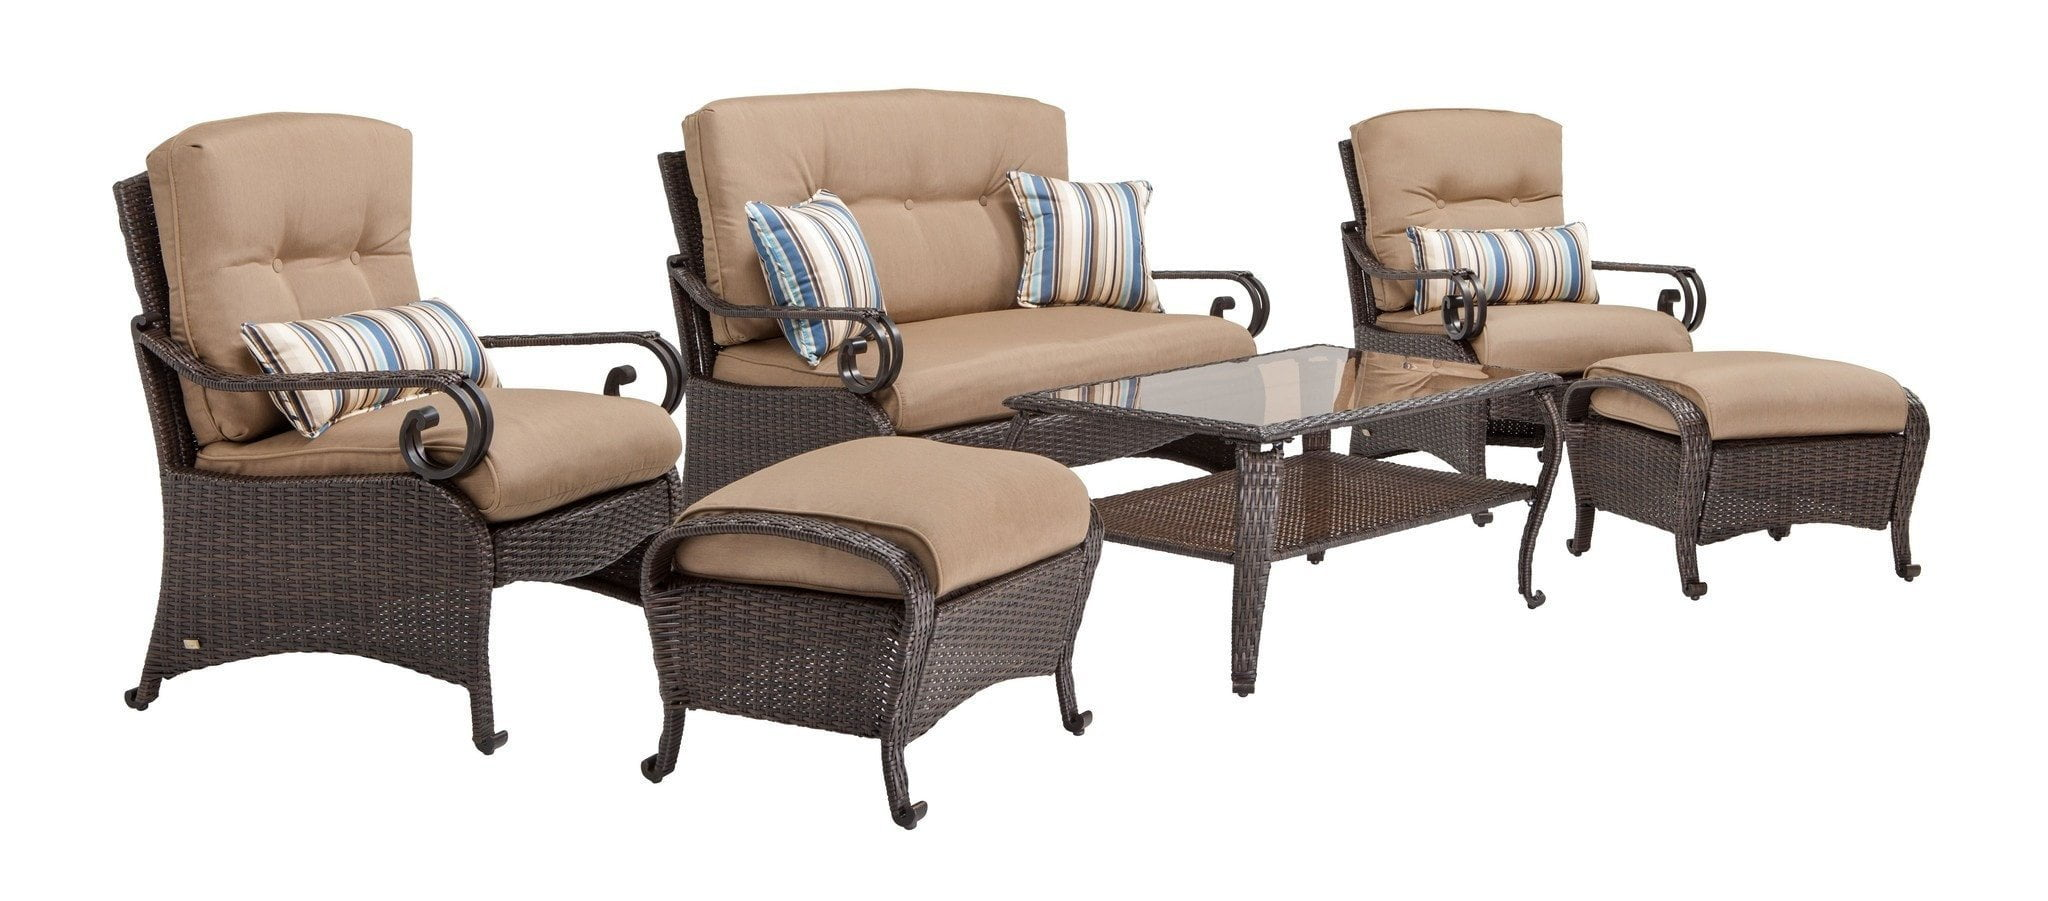 Lake Como Deep Seating Wicker Patio Furniture Set Khaki